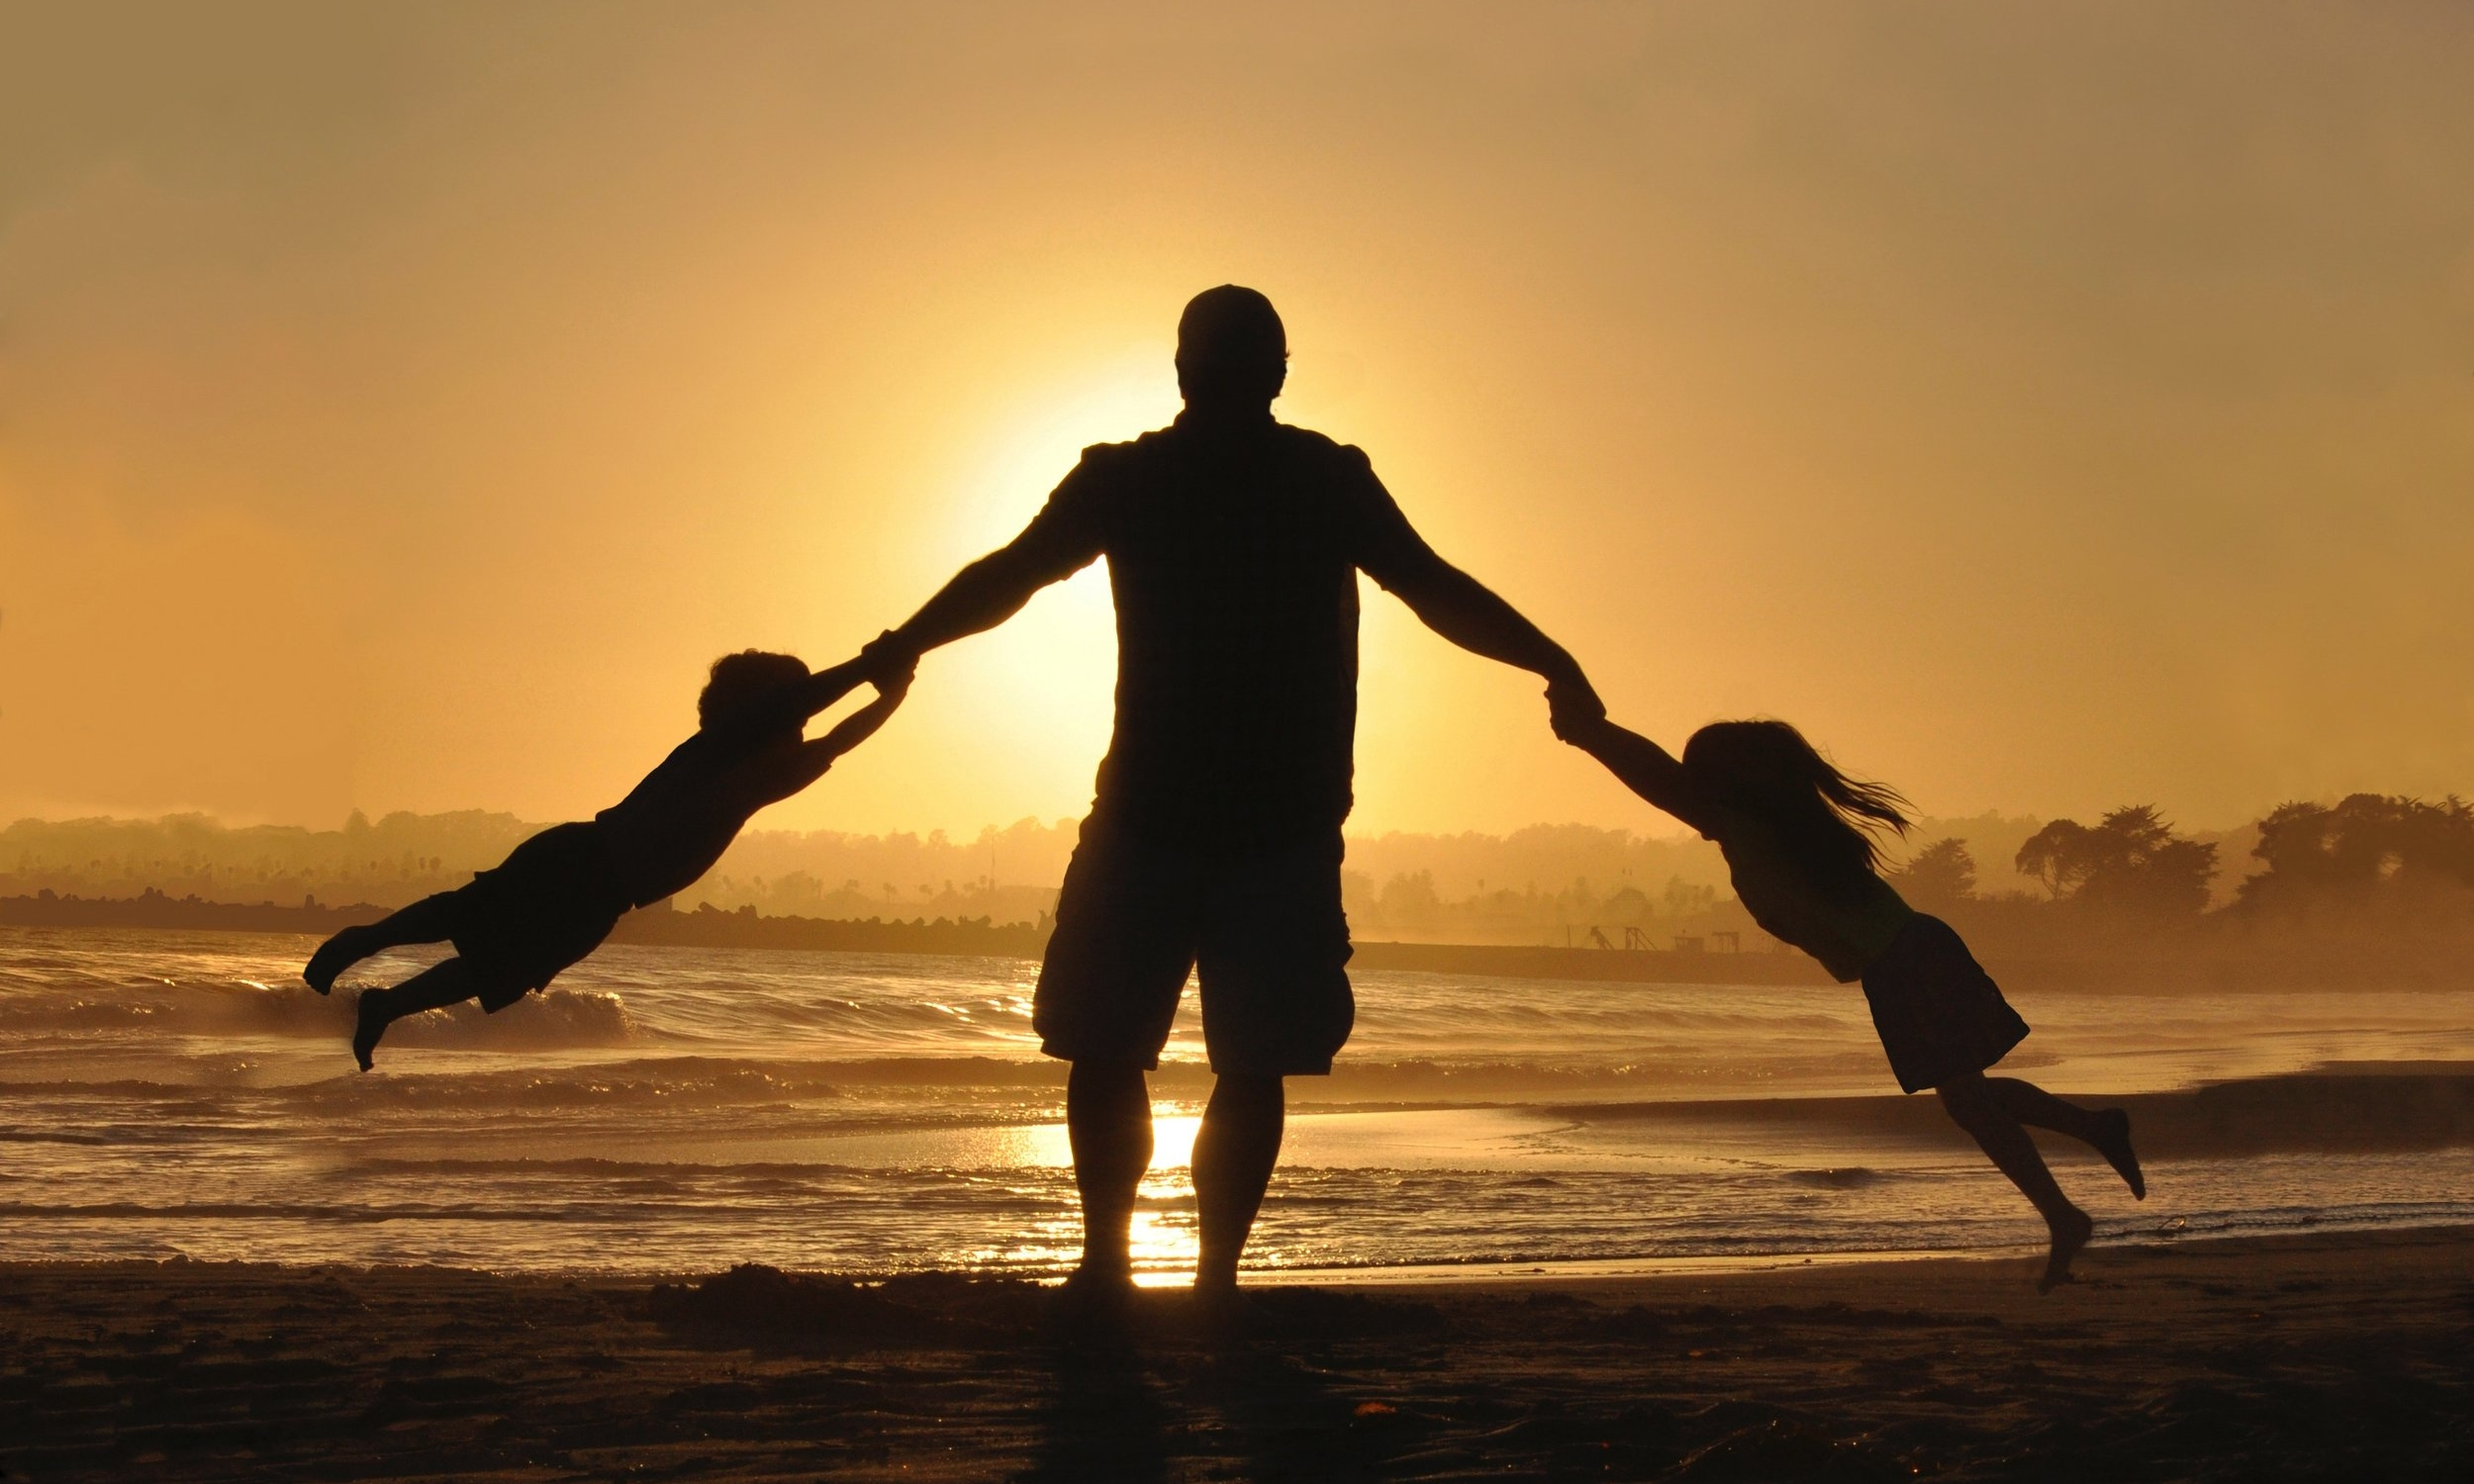 Family Yoga Workshop - Share the practice of yoga with your children!*FULL* 27th January, Worthing - new dates TBC